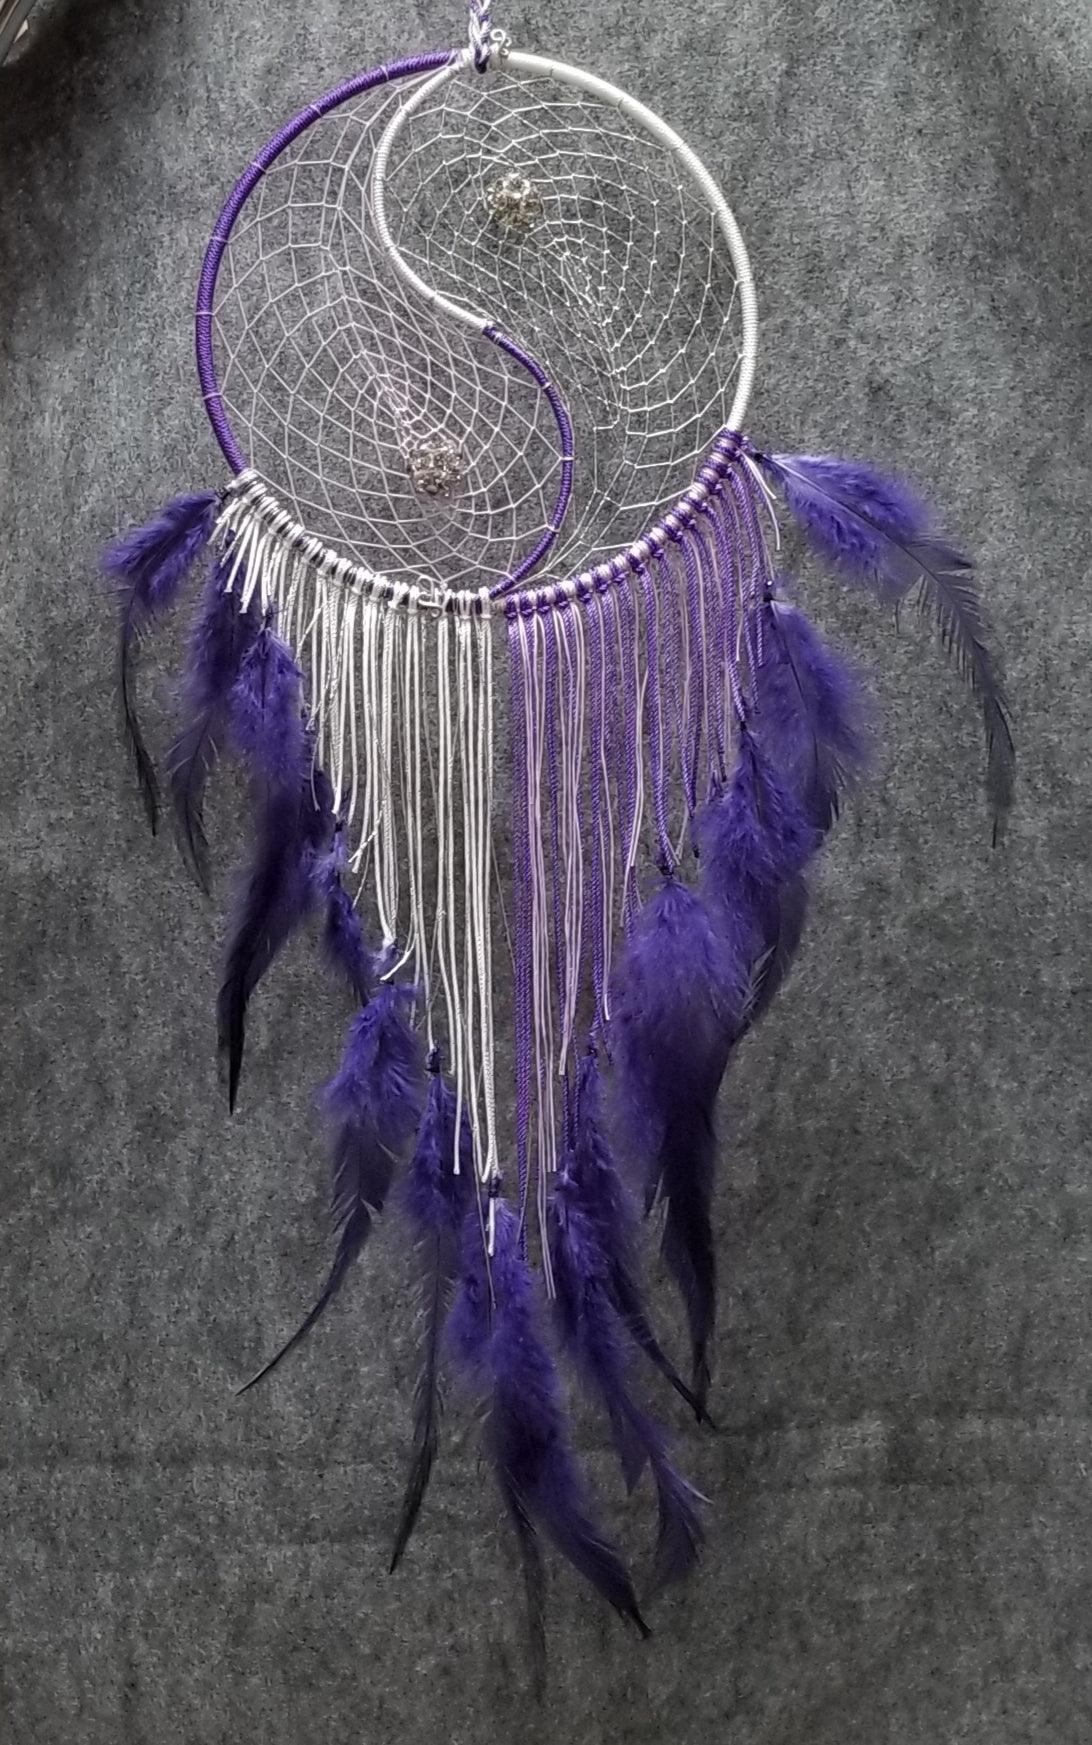 DC190 Dream Catcher - Ying and Yang - Trinkets & Things Handmade with Aloha